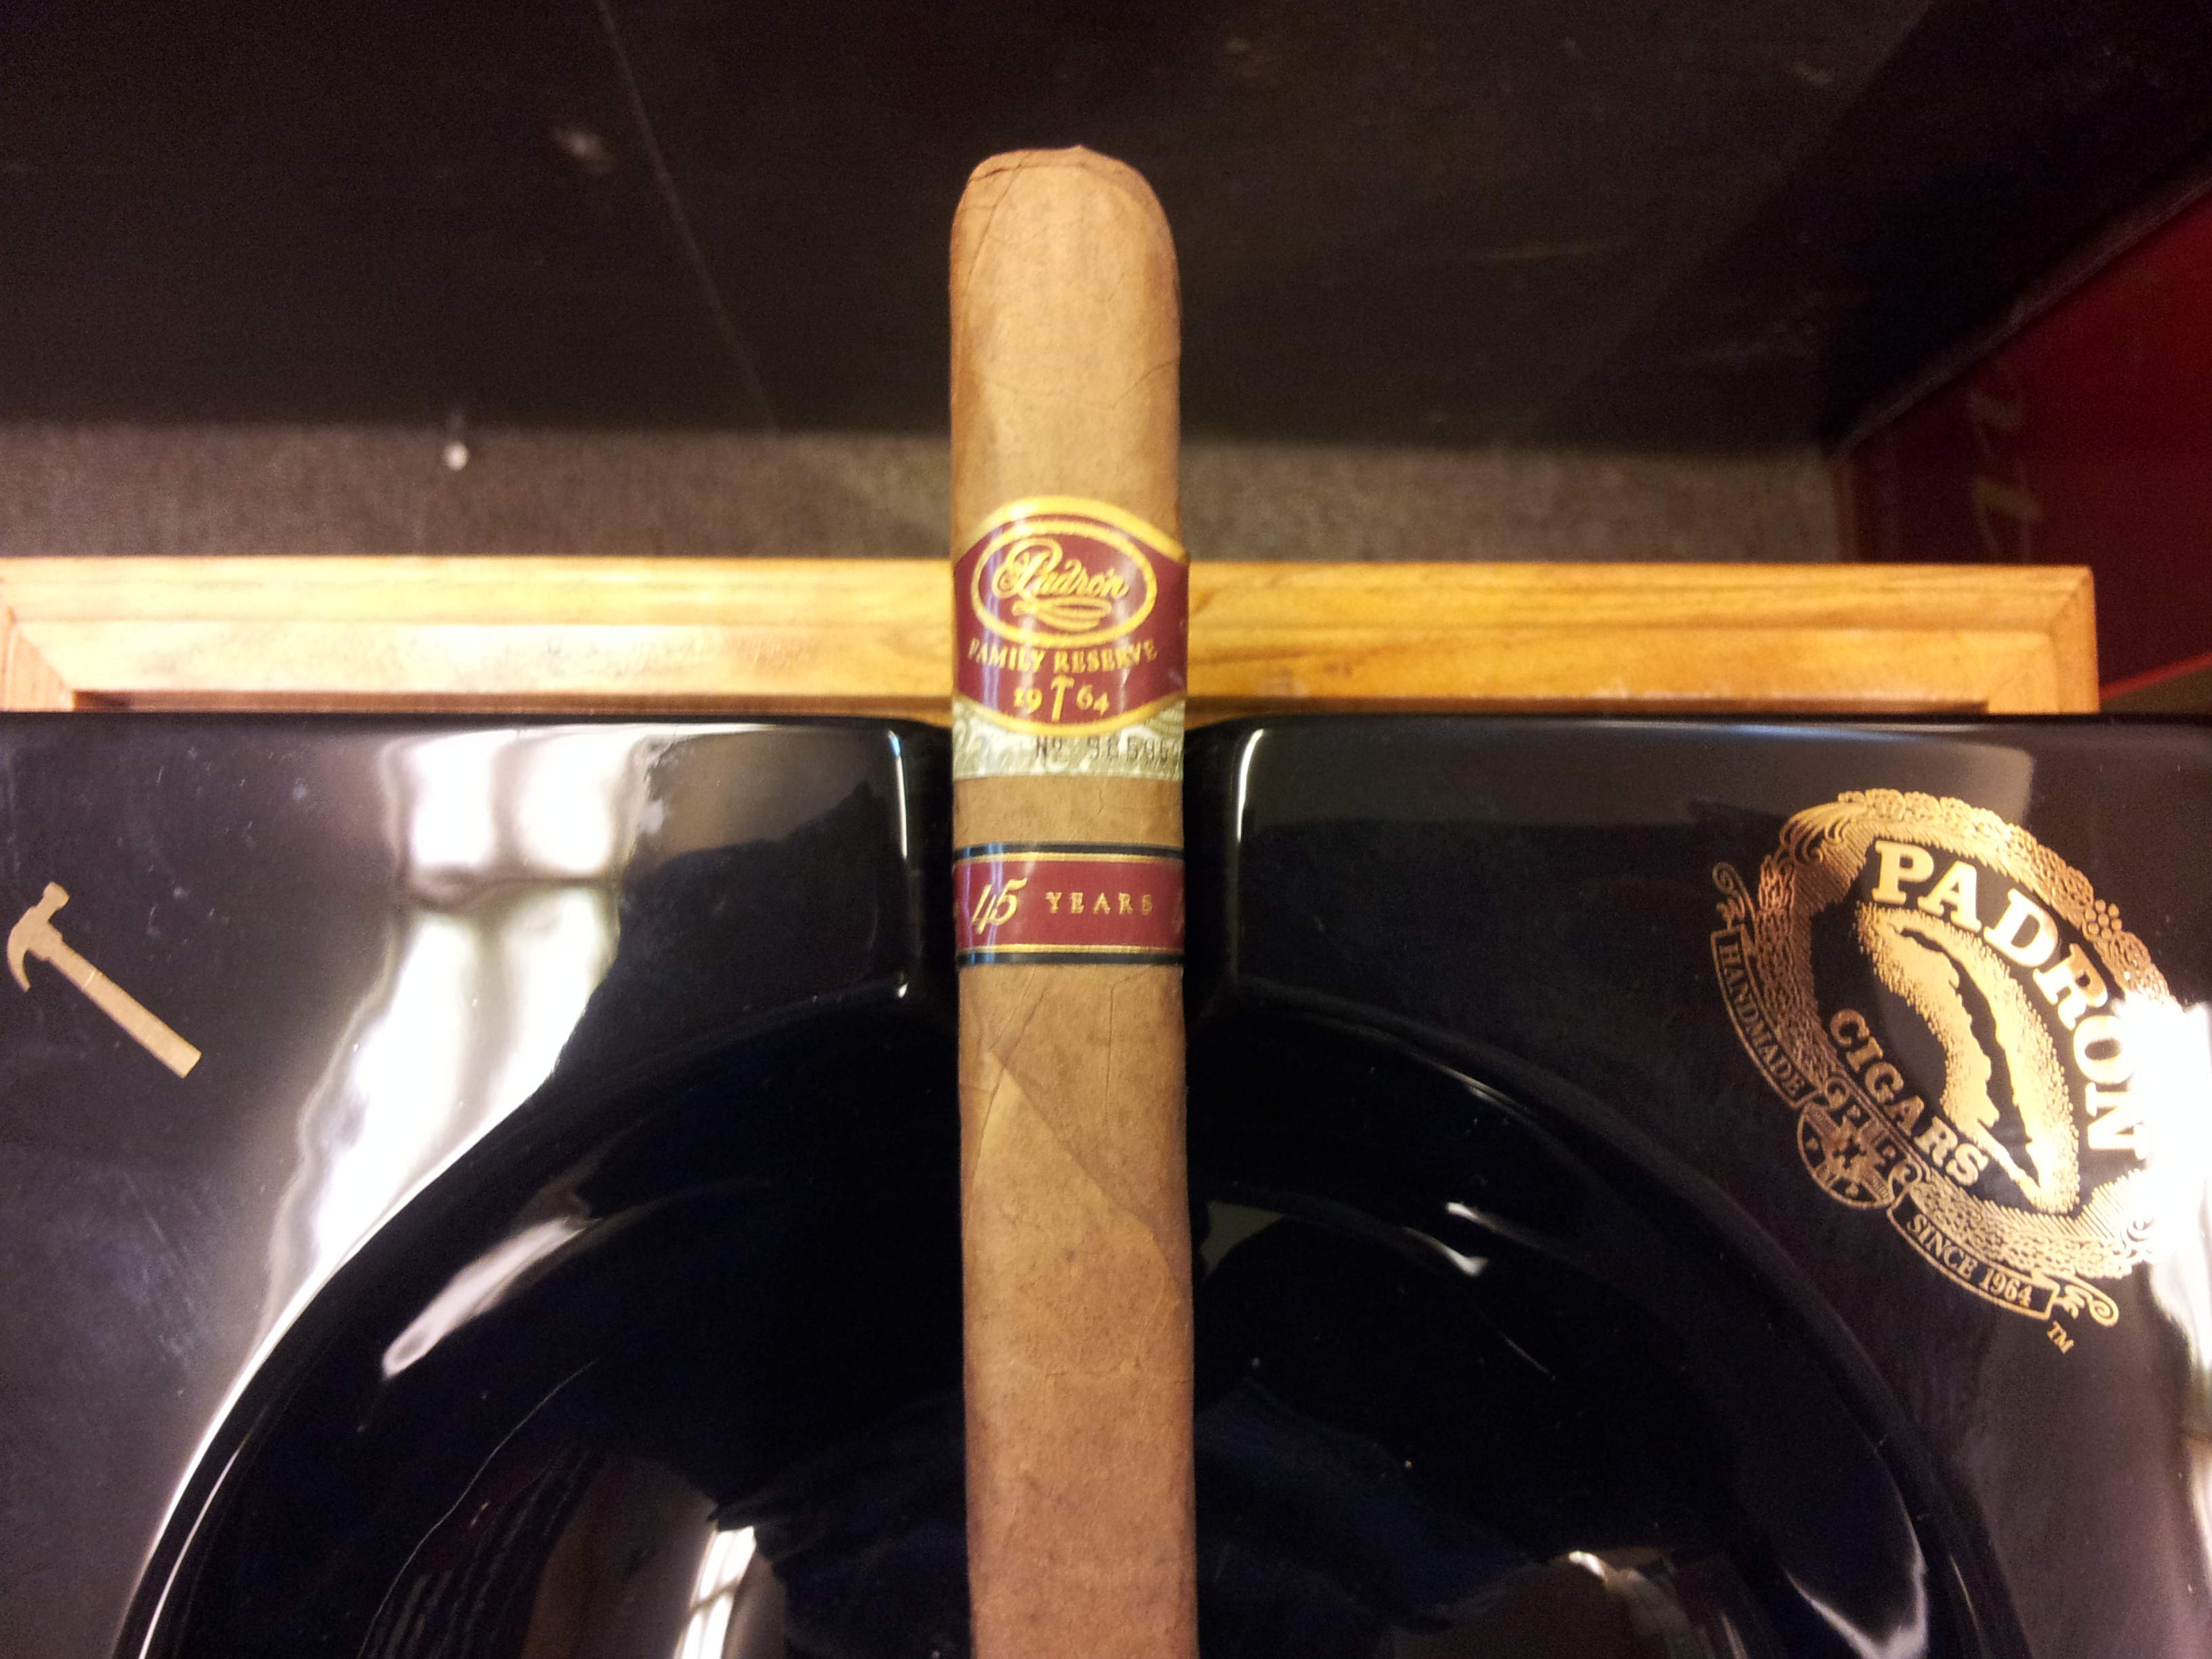 Padron Family Reserve #45 Nat – Cigar Review